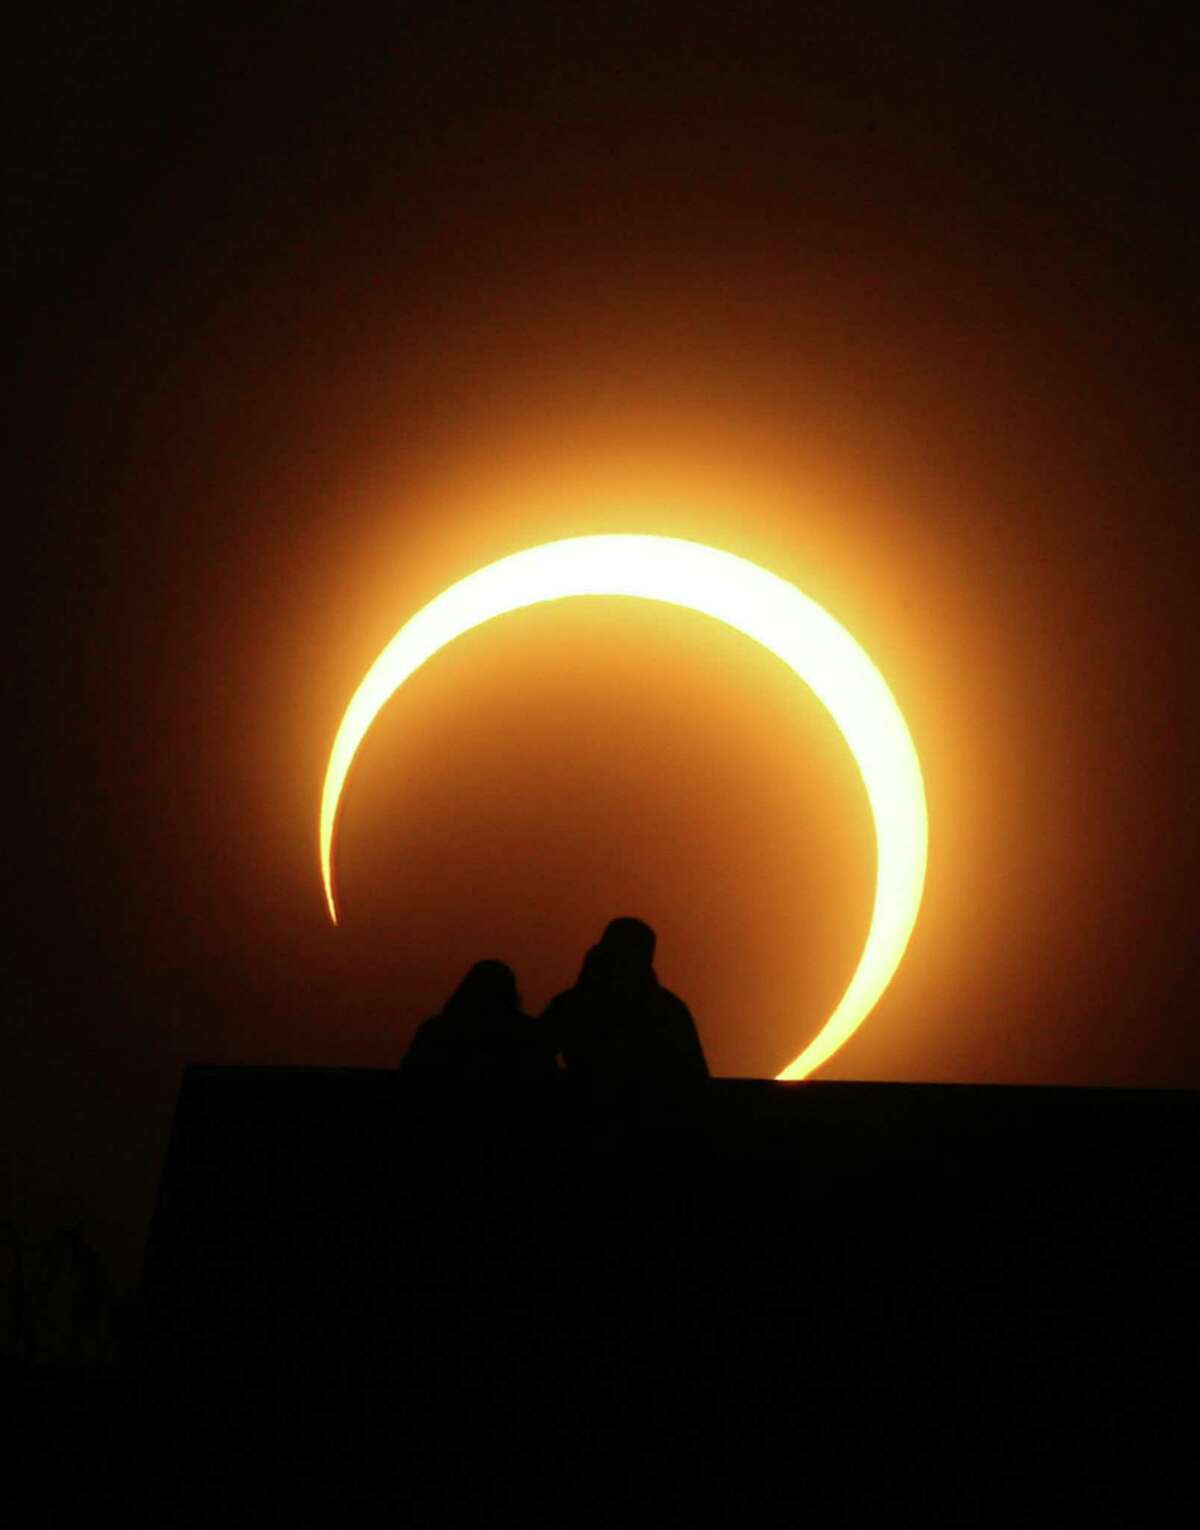 A Chinese couple watches the solar eclipse over Zhengzhou, central China's Henan province on Jan.15, 2010. A solar eclipse that reduced the sun to a blazing ring surrounding a somber disk plunged millions of people in Africa and Asia into an eerie semi-darkness, as the spectacle, visible in a roughly 300-kilometere (185-mile) band running 12,900 kilometers (8,062 miles) across the globe, set a record for the longest annular eclipse that will remain unbeaten for more than a thousand years. AFP PHOTO